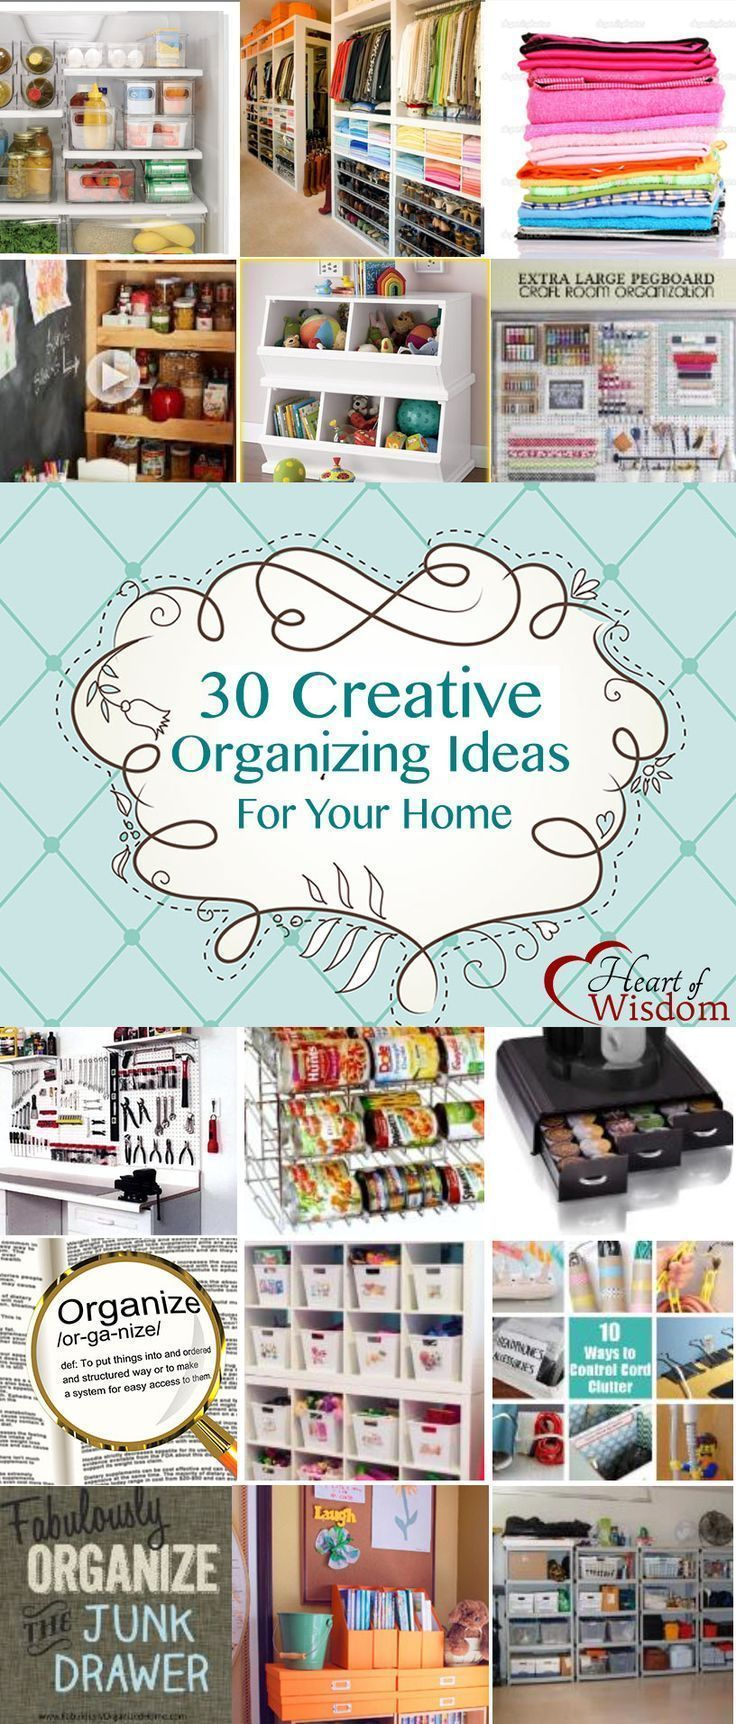 30 Creative #Organizing Ideas for Your Home